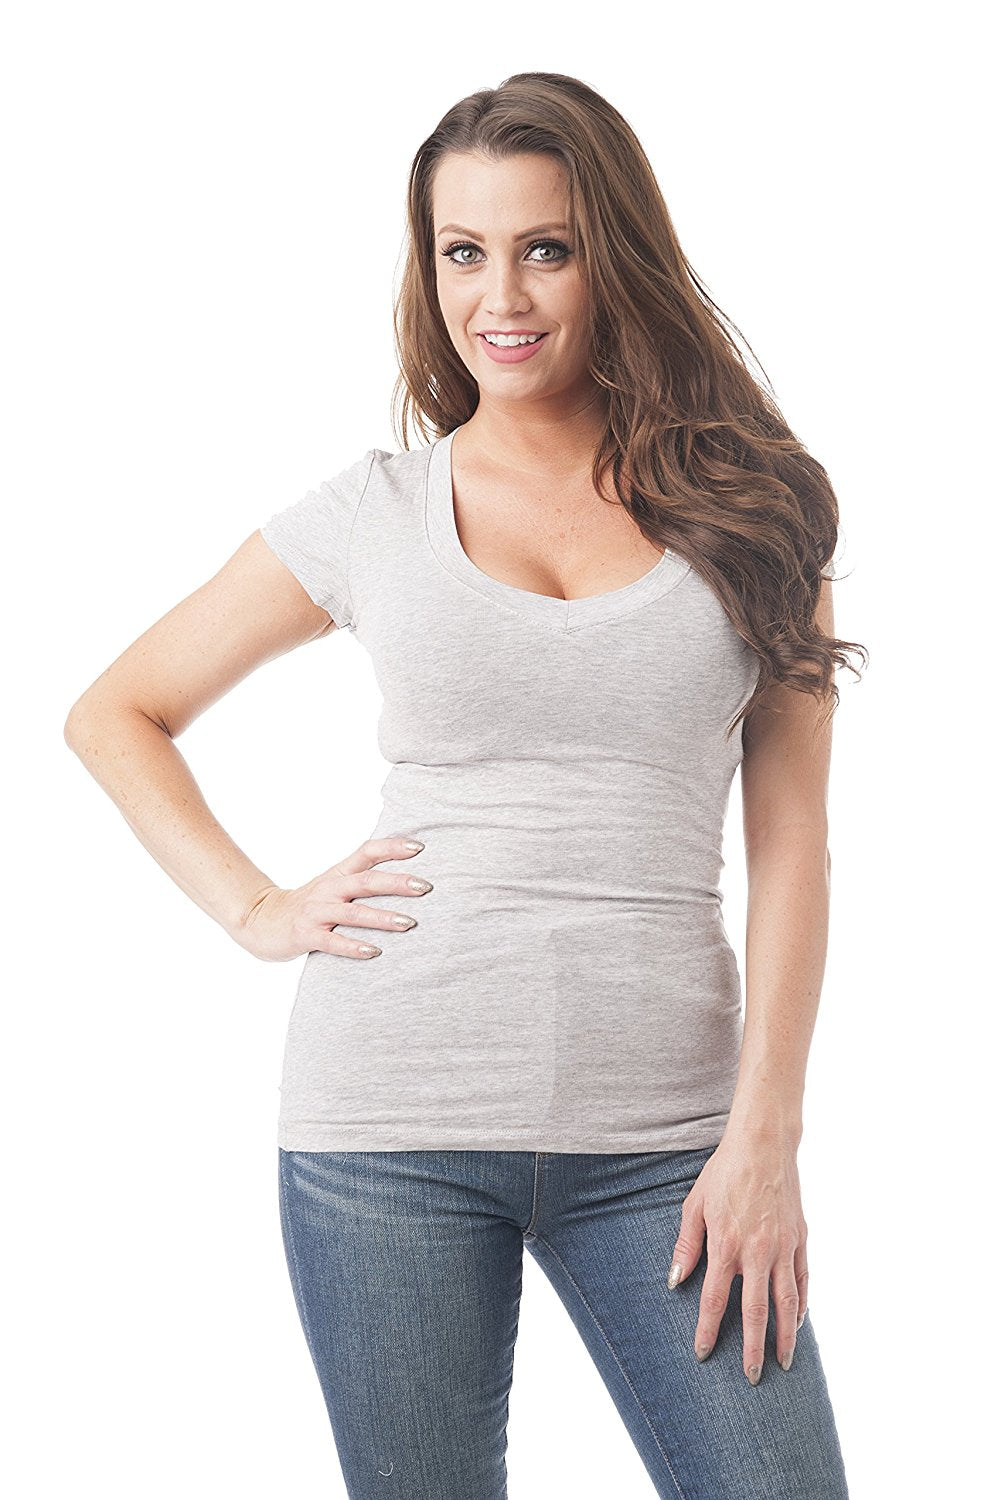 Short Sleeve V-neck Tee Top Shirt Cotton Regular and Plus Size